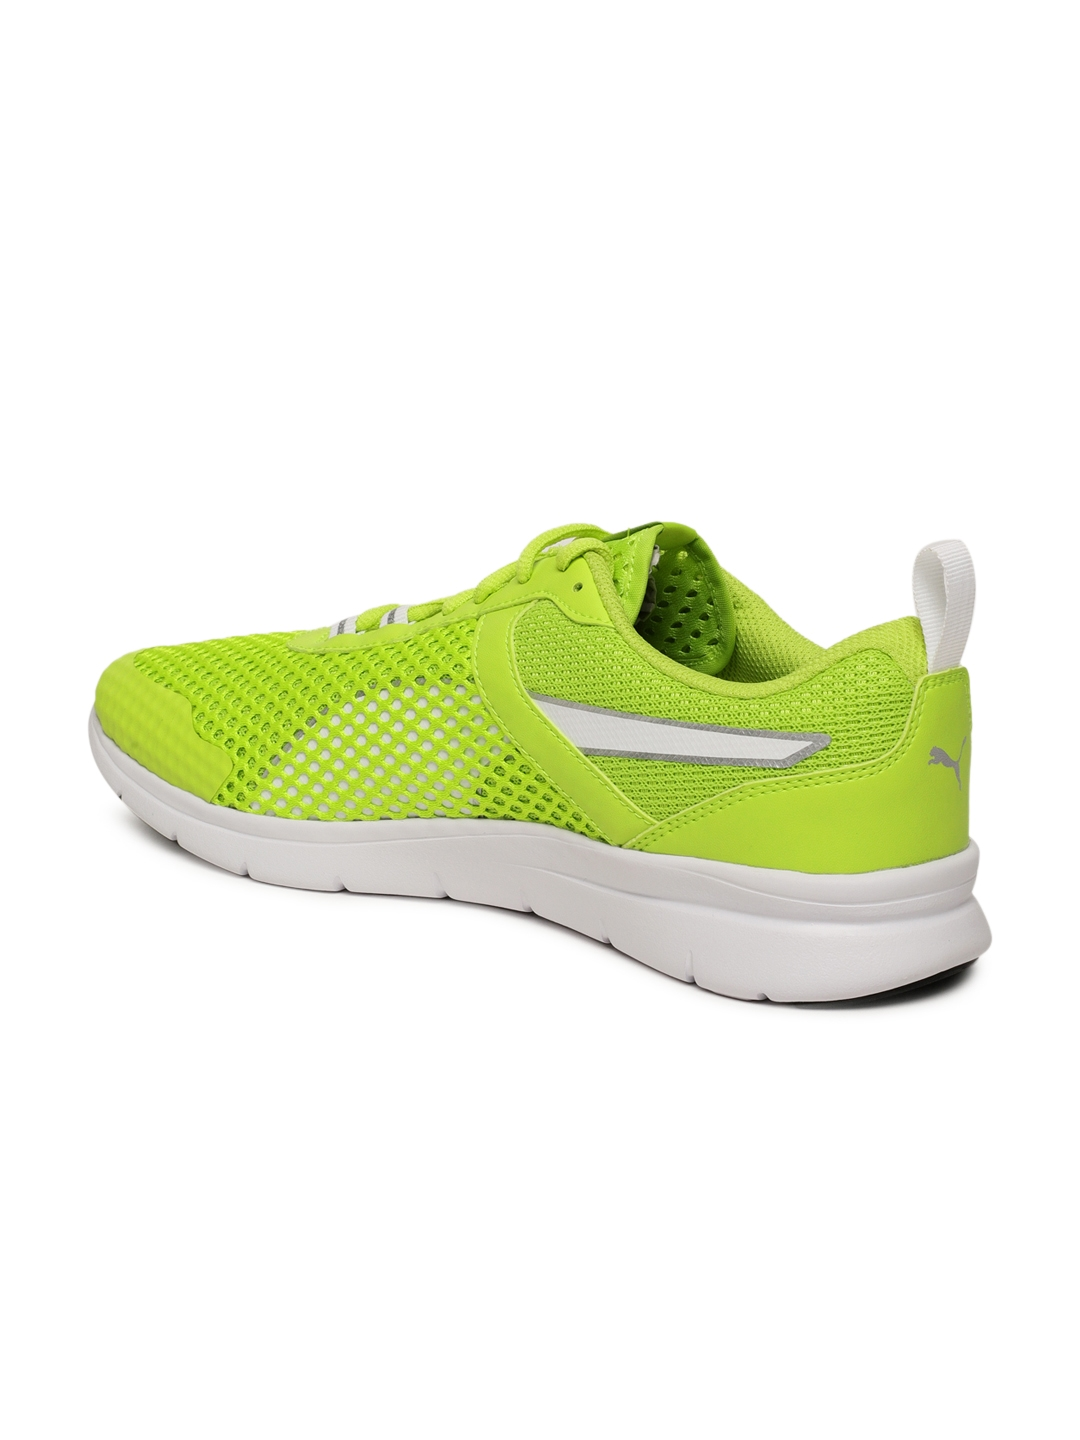 Buy Puma Unisex Lime Green Running Shoes - Sports Shoes for Unisex ... 290b29fb4e86